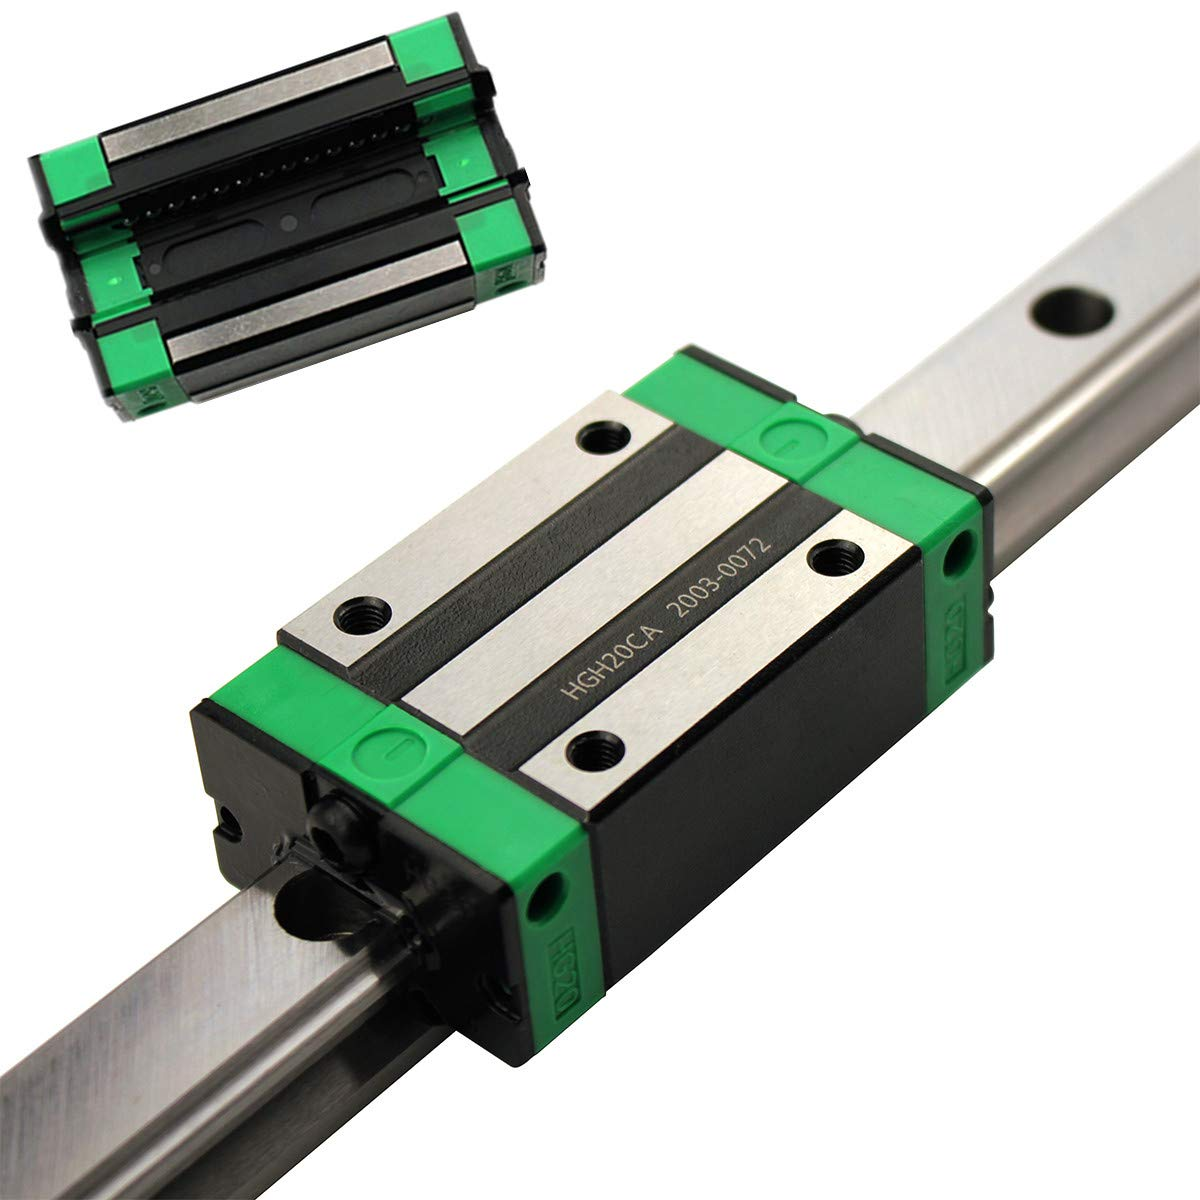 Anti-Backlash Ballscrew with End Machined for DIY CNC Routers Lathes Mills GUWANJI HGR20-300mm//11.8 inch Linear Guide Rail with HGH20CA Bearings Block 13.8 inch SFU1605-350mm